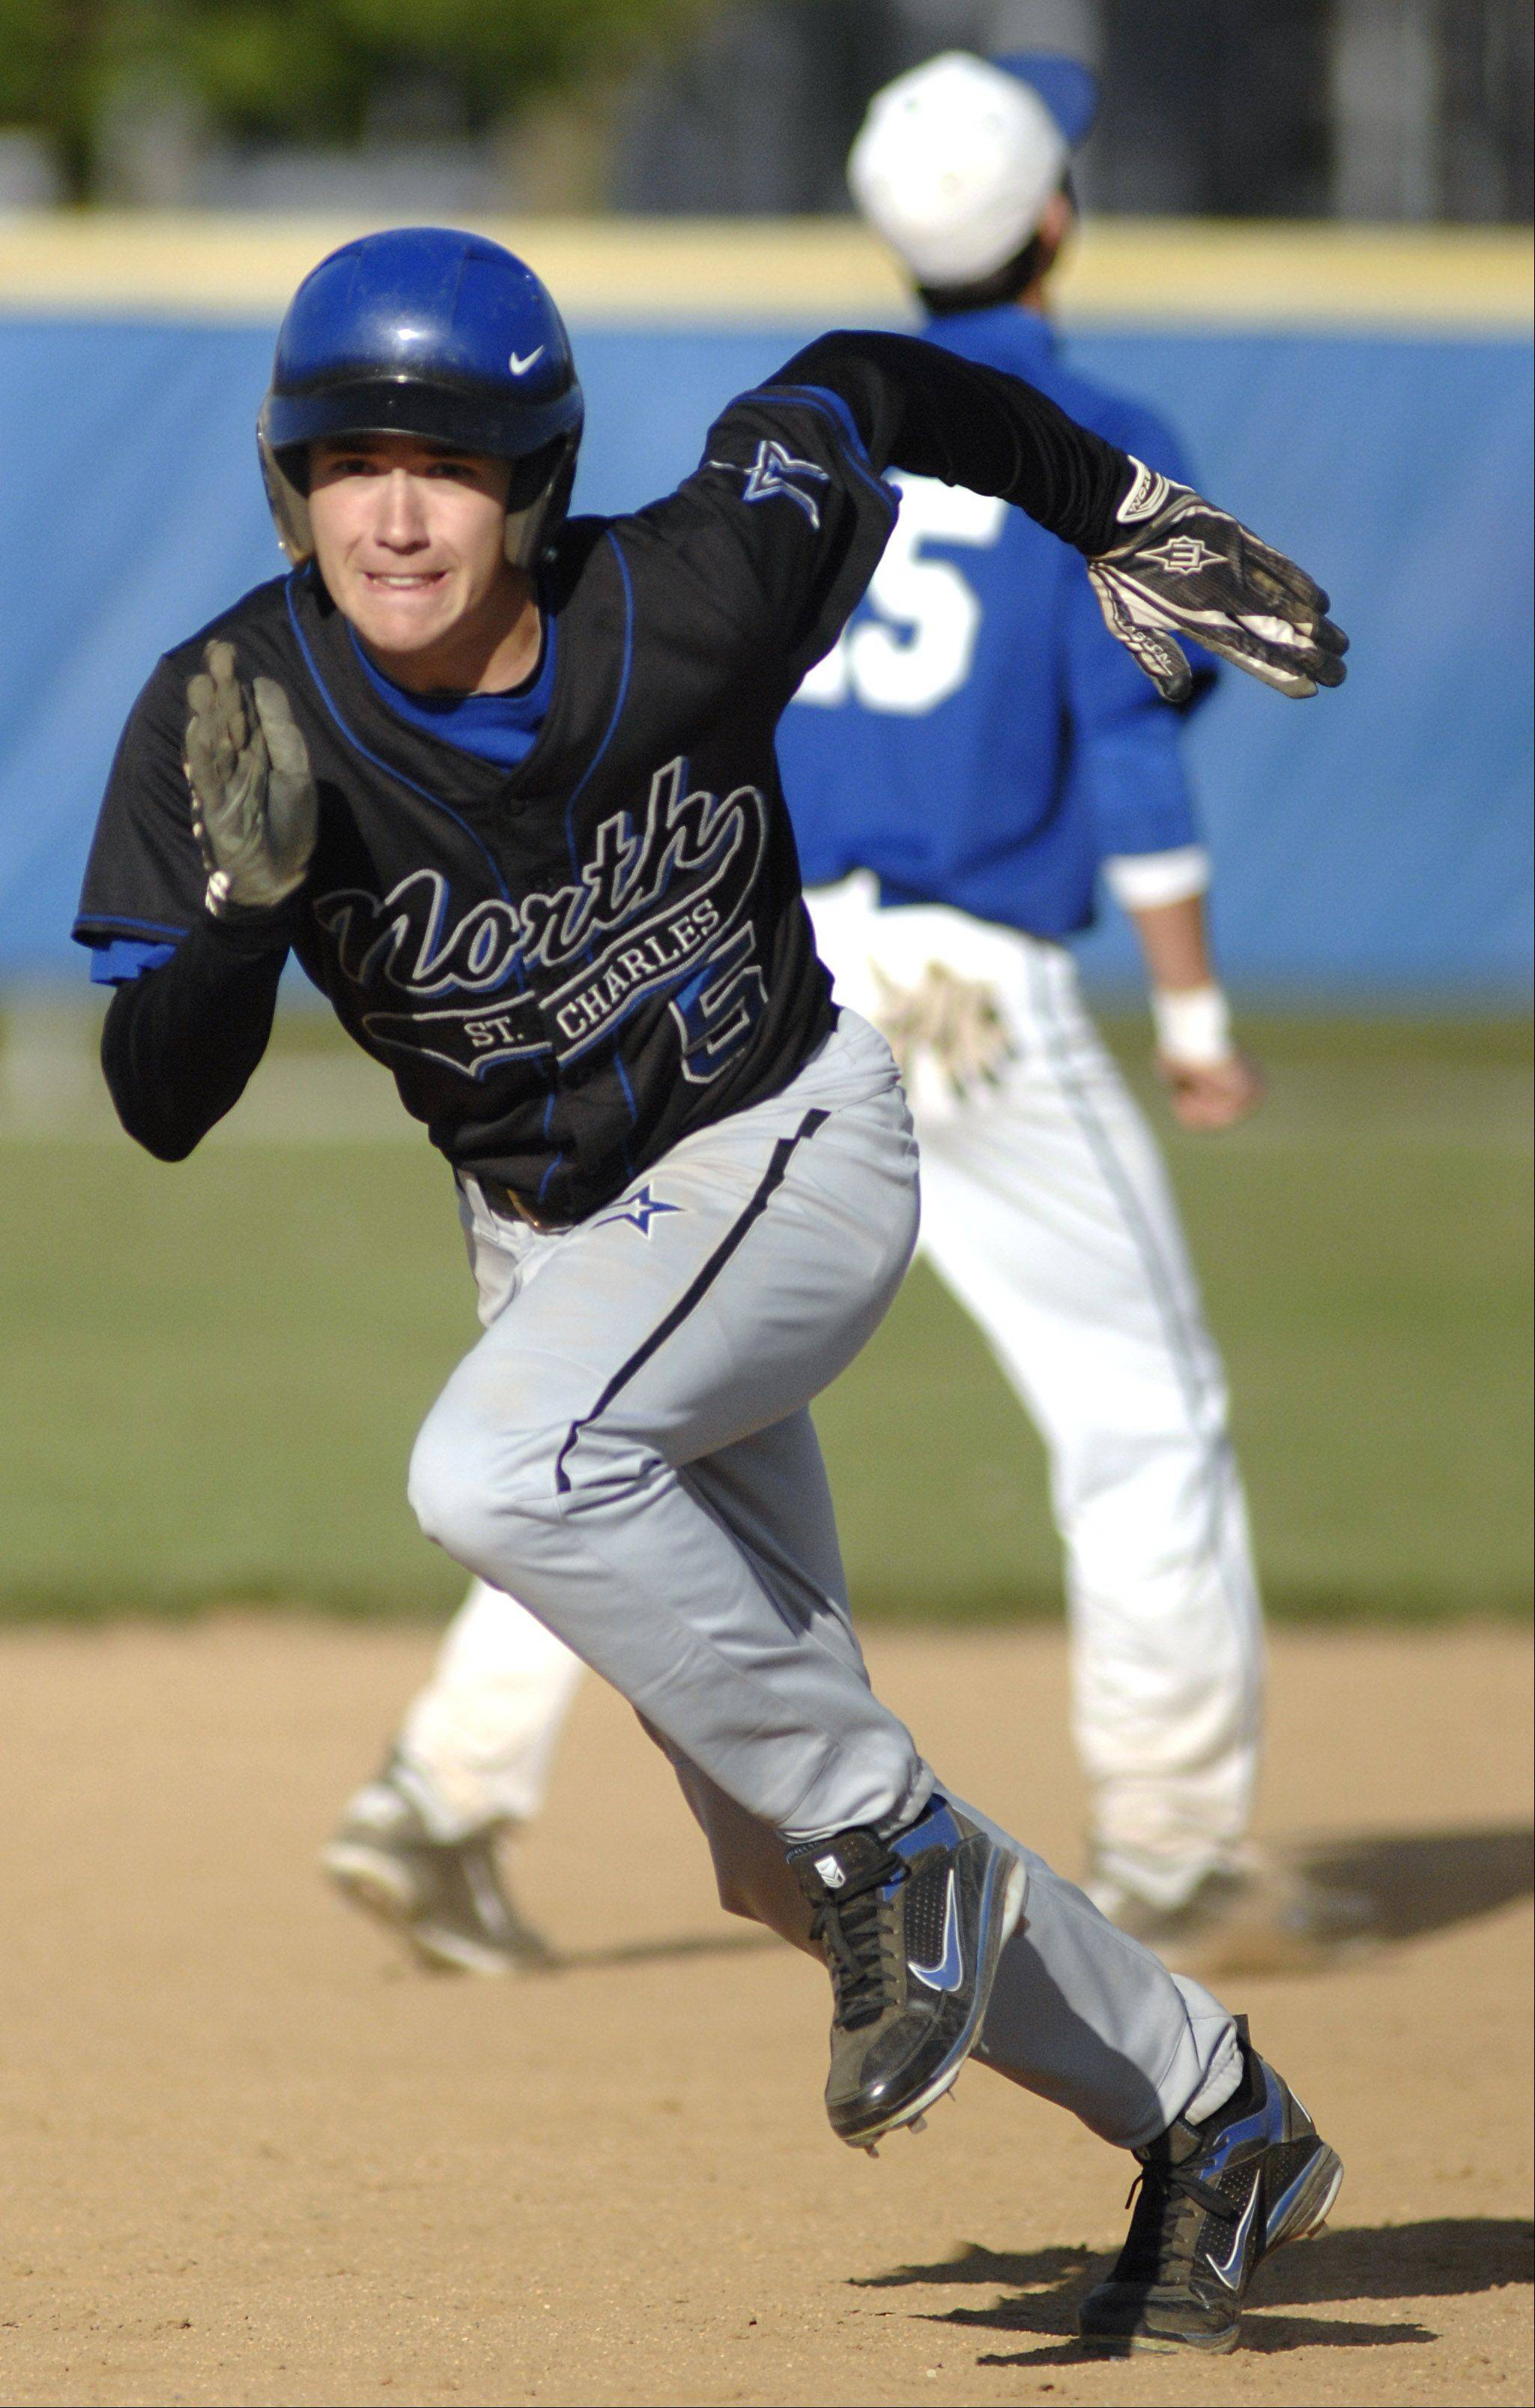 St. Charles North's Kurt Barbeau bolts for third base in the fifth inning on Thursday, April 26.